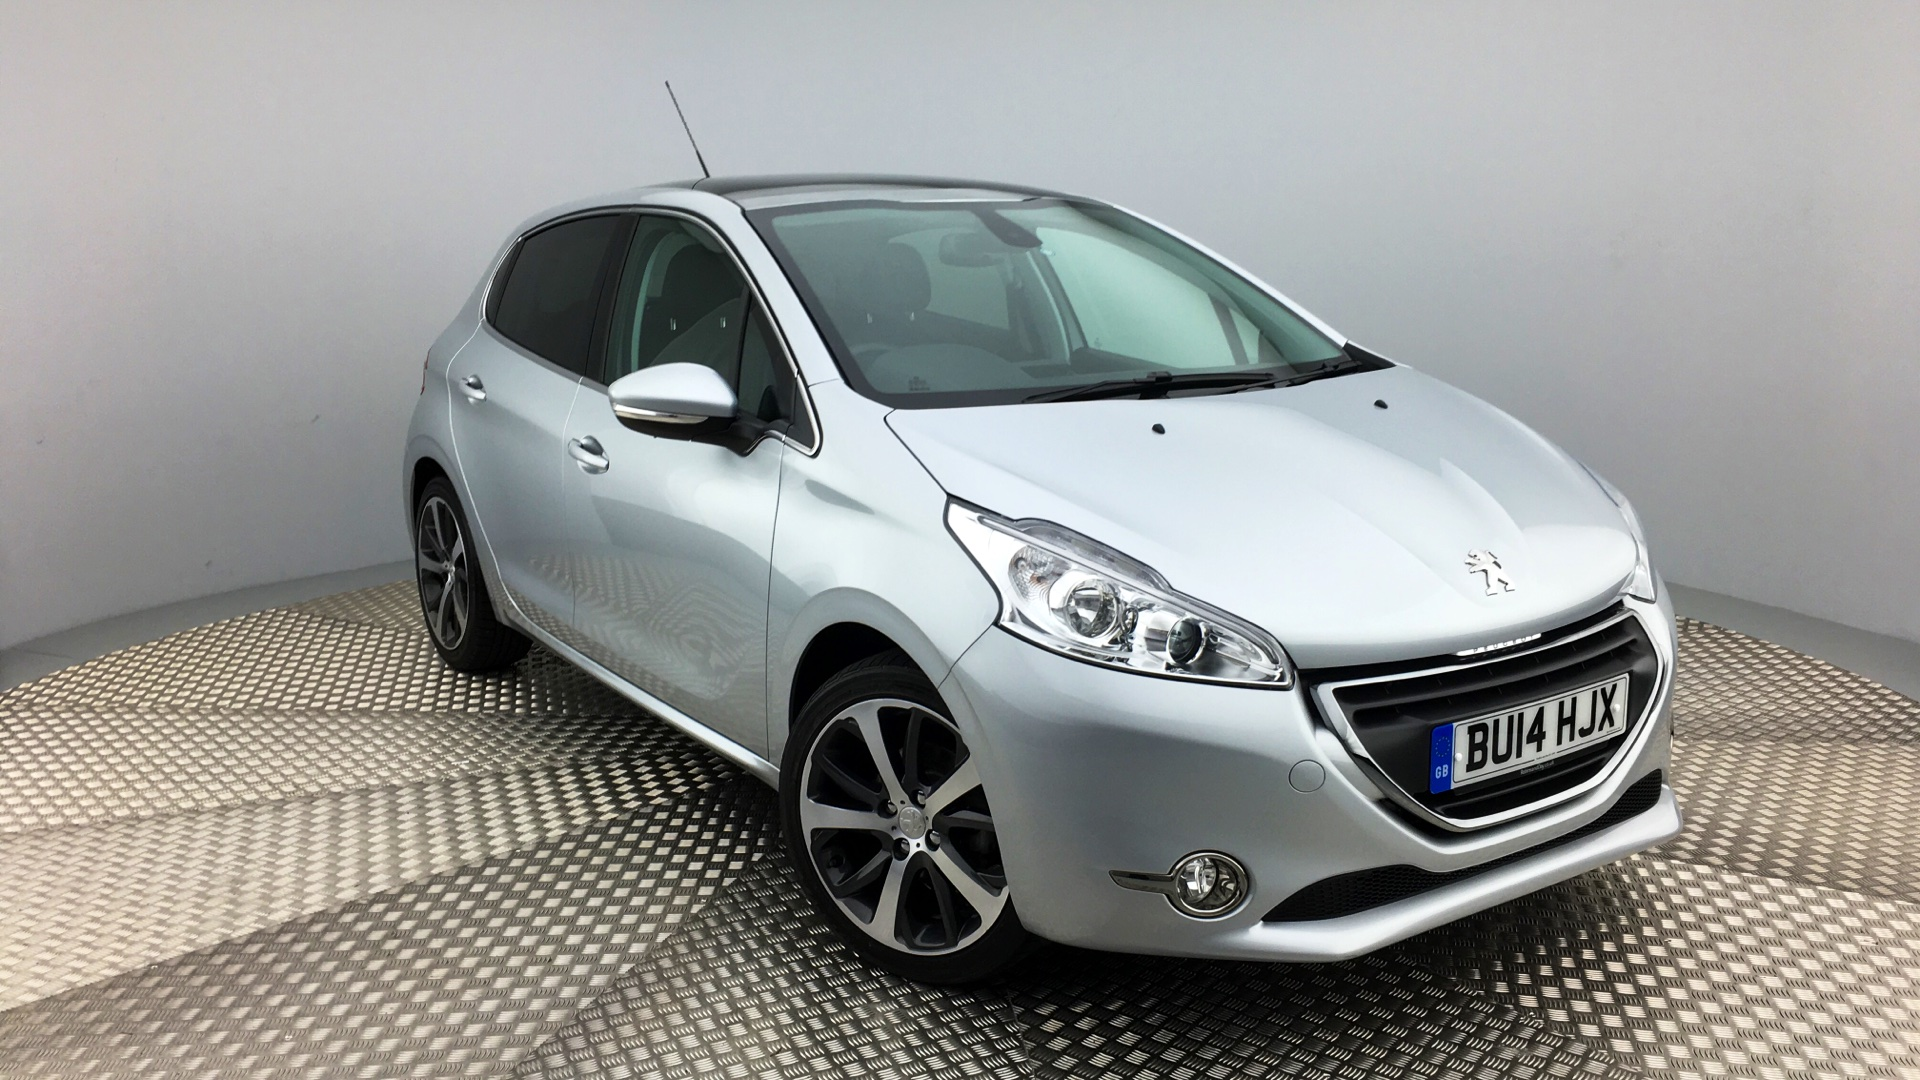 used peugeot 208 hatchback 1 6 vti feline 5dr 2014 bu14hjx. Black Bedroom Furniture Sets. Home Design Ideas